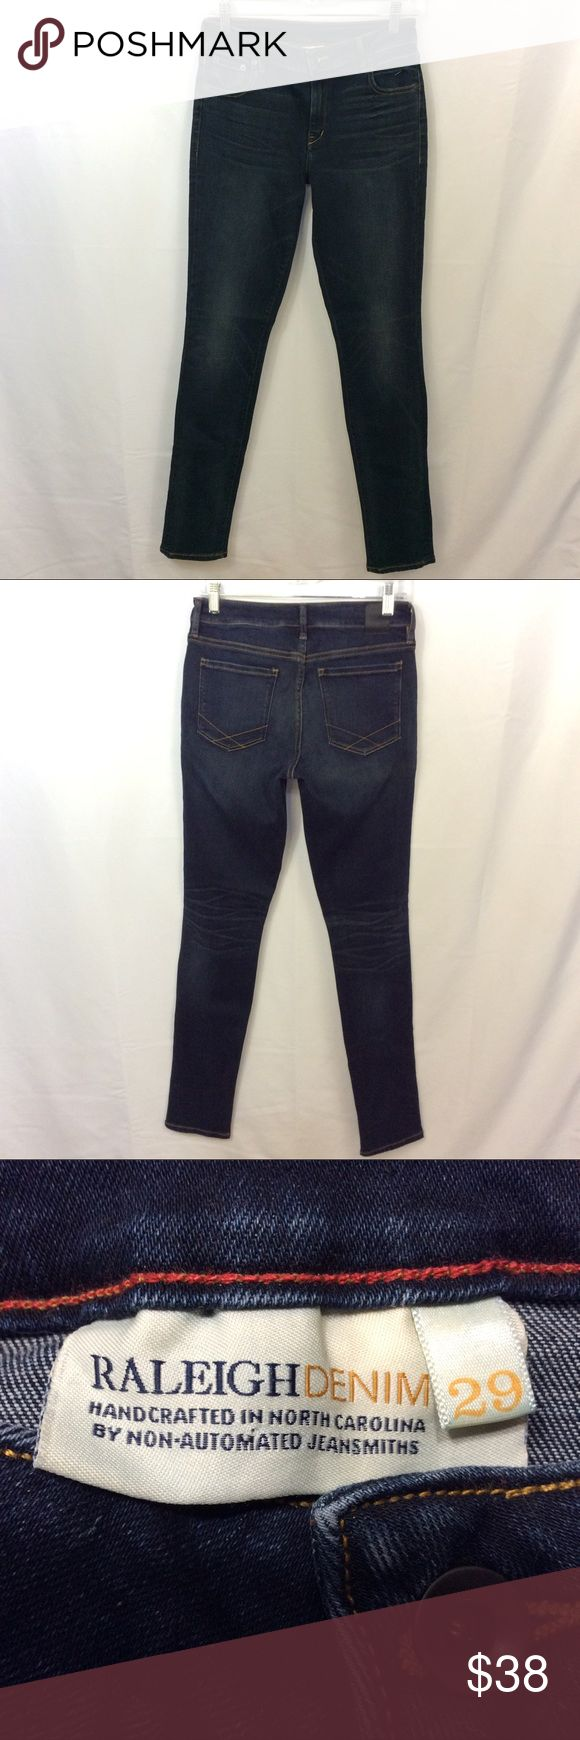 Raleigh Denim Women's Surry Dark Wash Jeans 29 # In excellent preowned condition. Raliegh Jeans Skinny